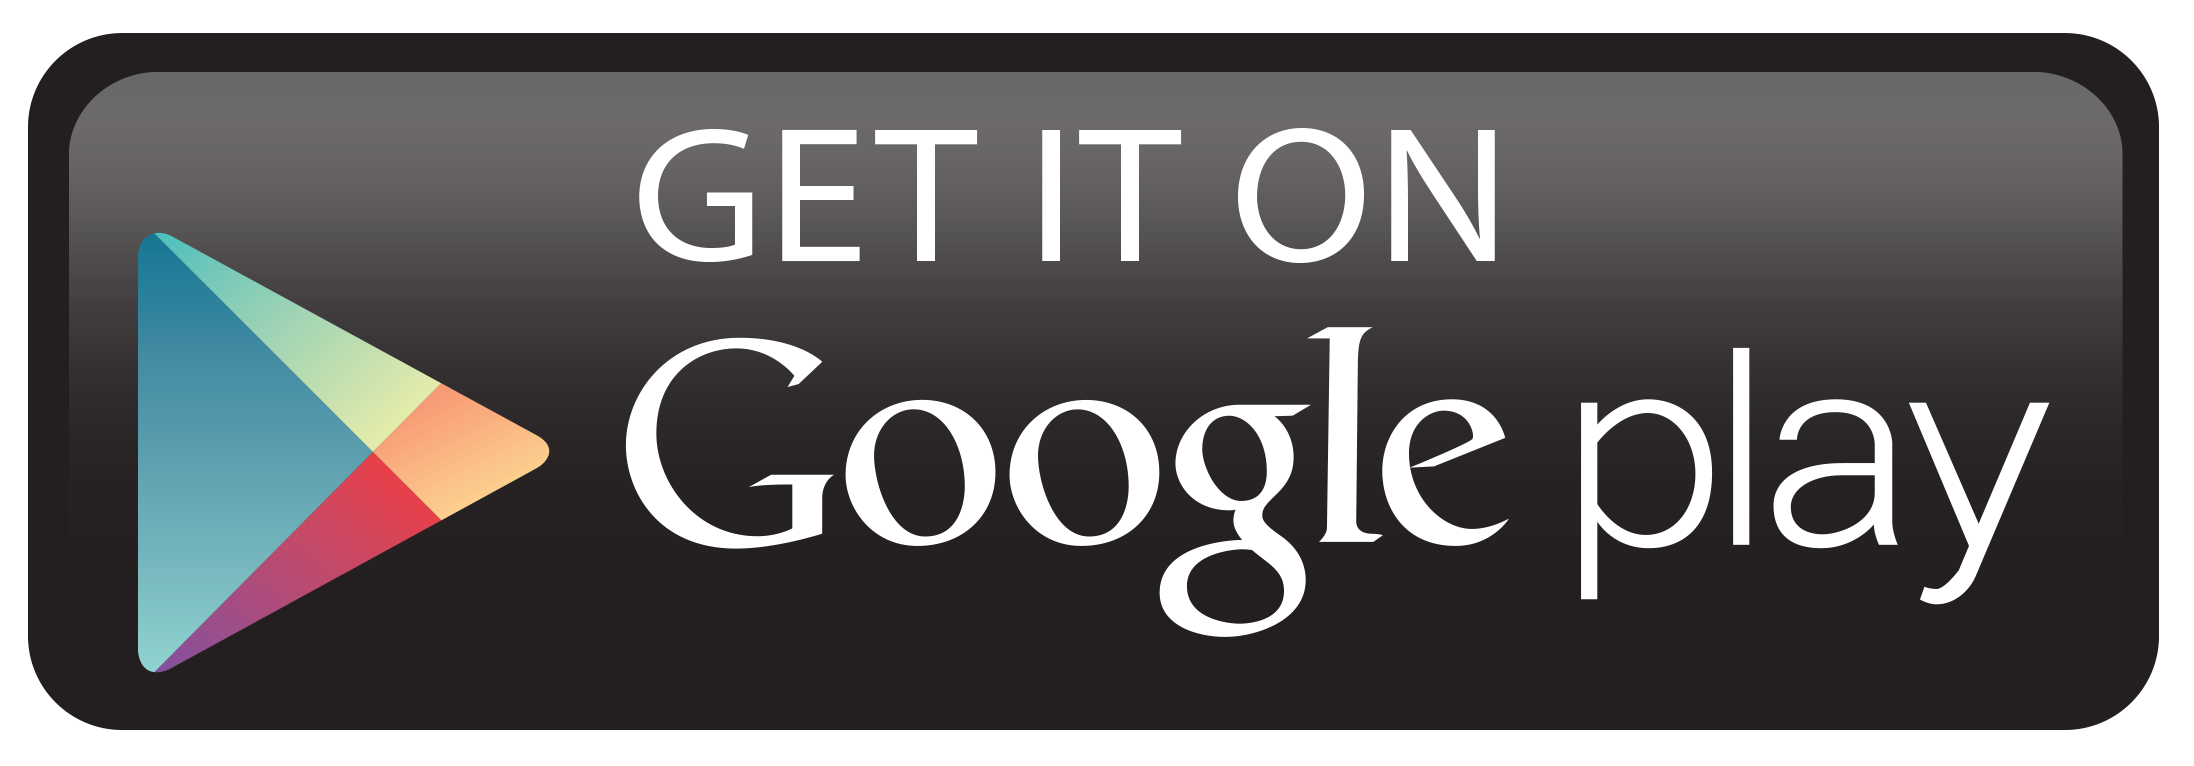 Get It On Google Play Badge PNG - 110346